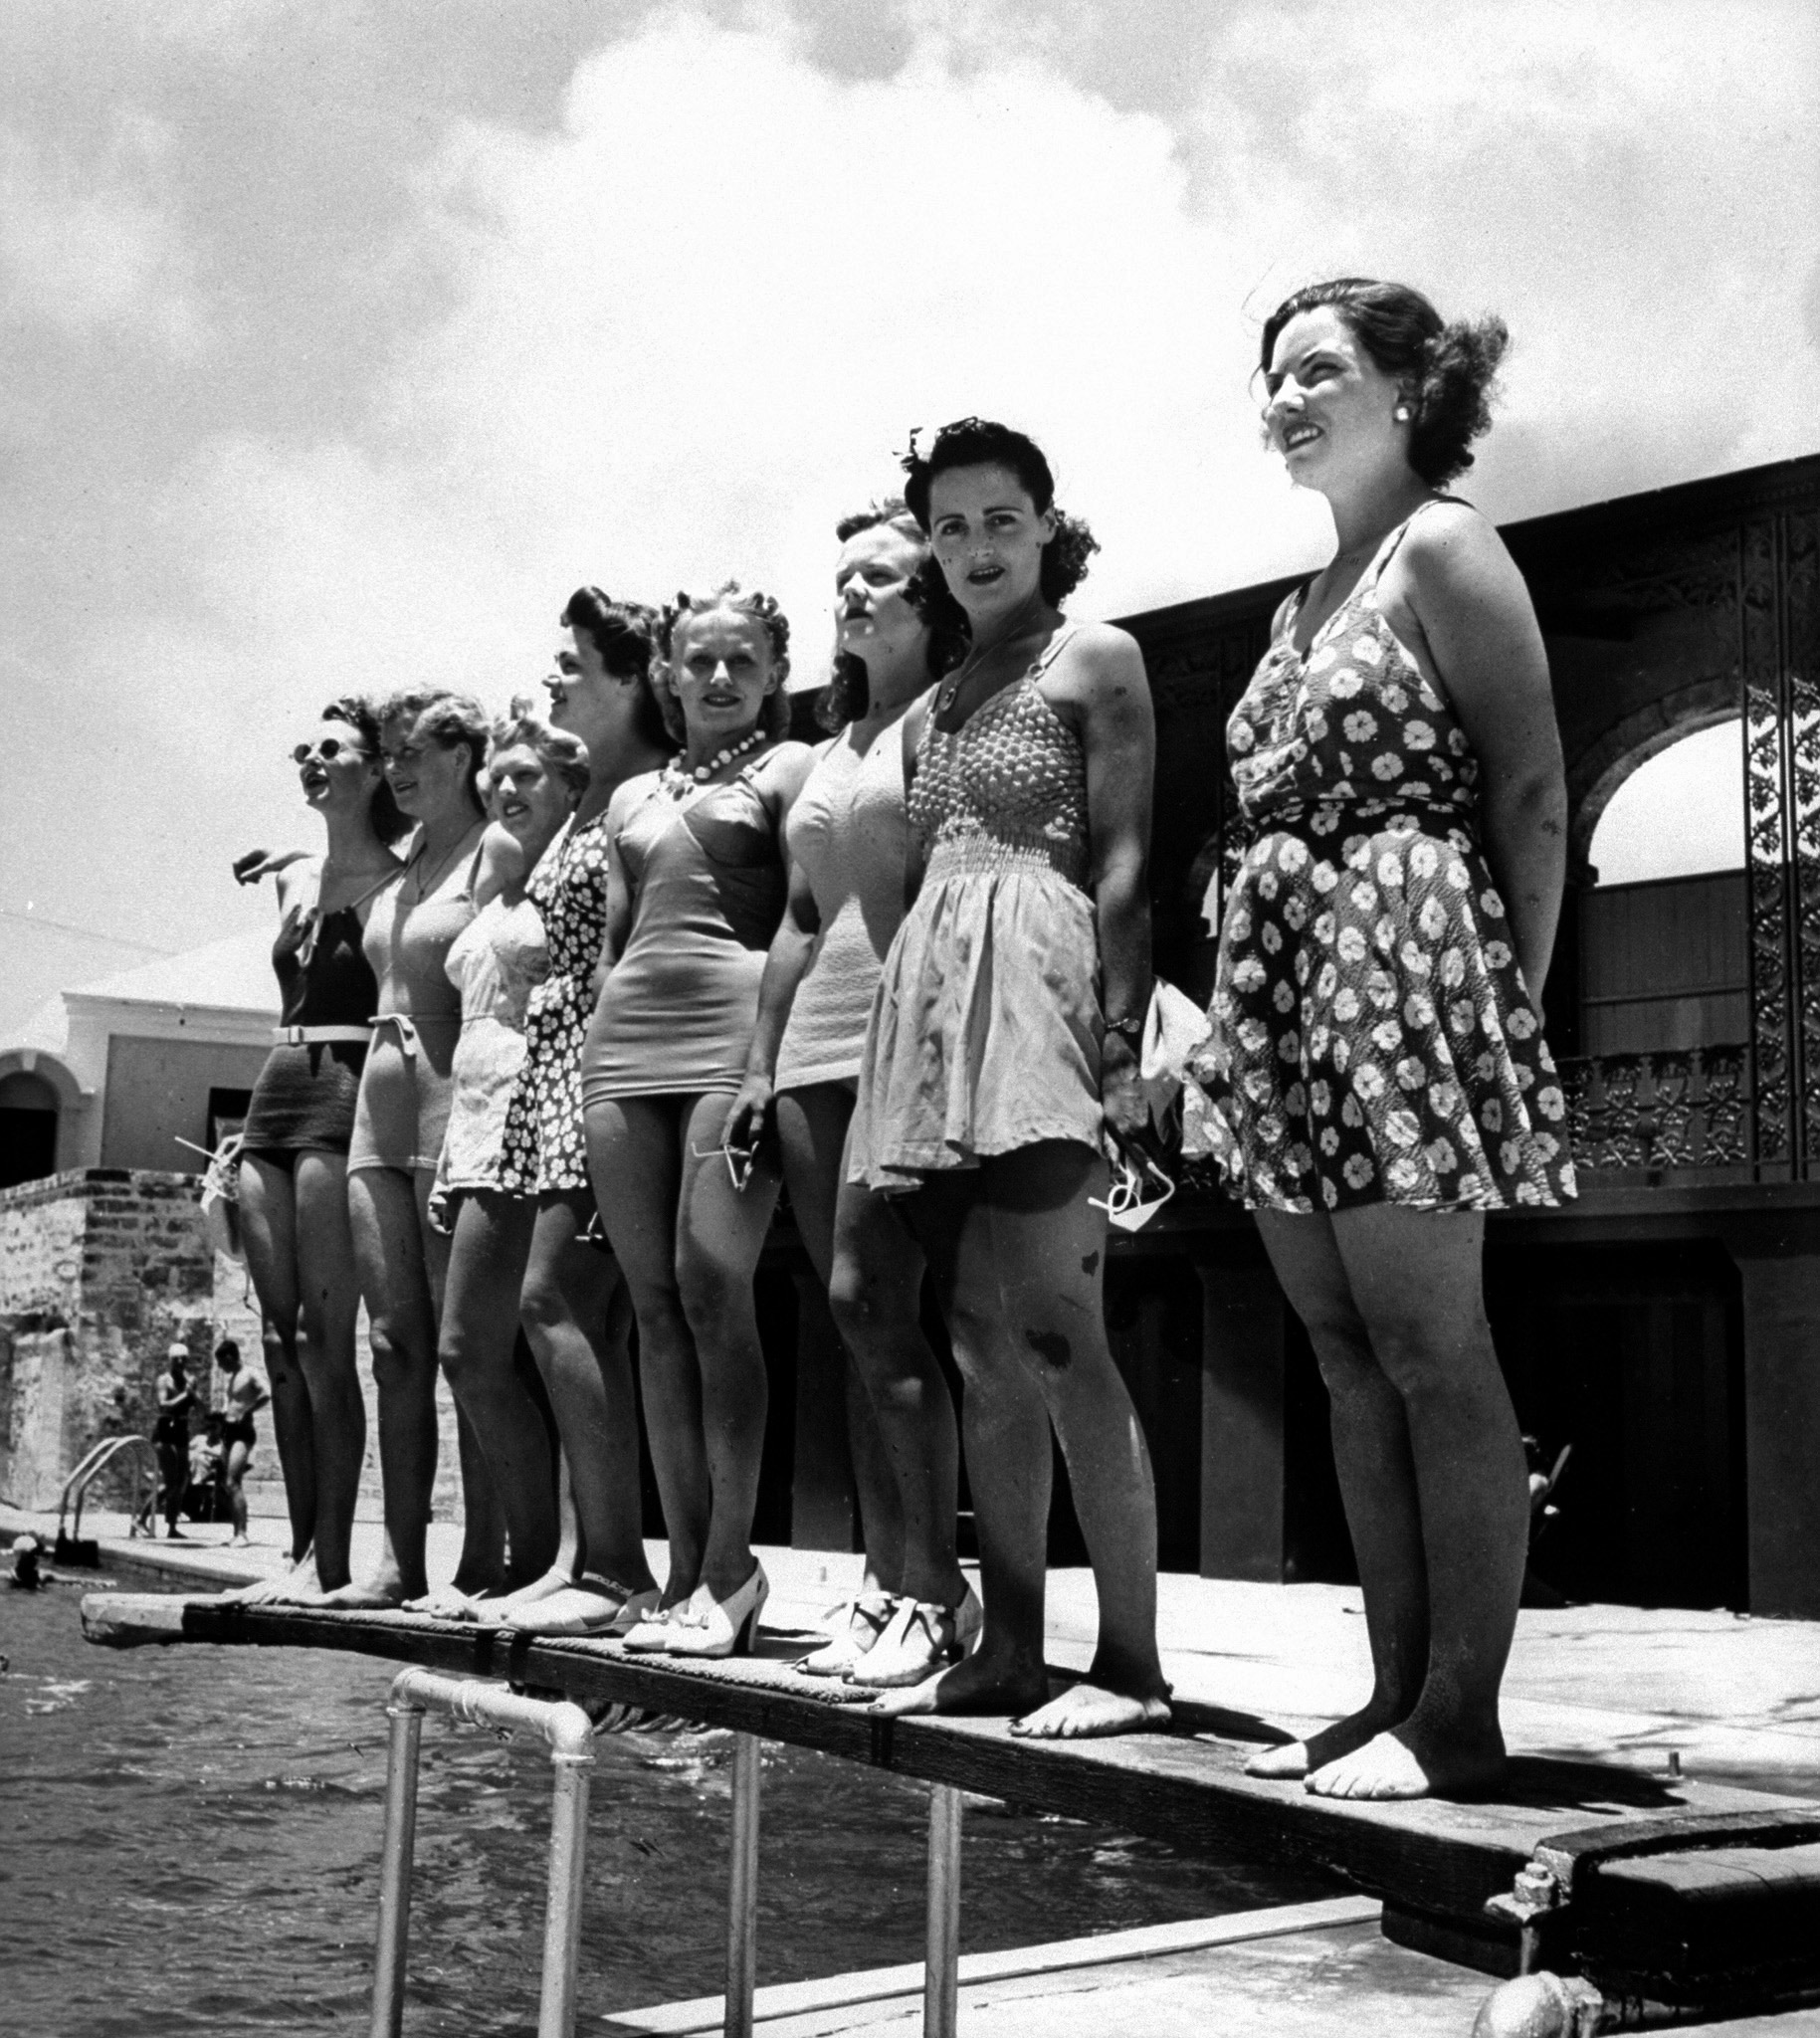 Bathing suit clad female members of the British Imperial Censorship Staff, who call themseleves the censorettes, standing poolside at the Princess Hotel, which also serves as their offices on the island. Circa 1941.